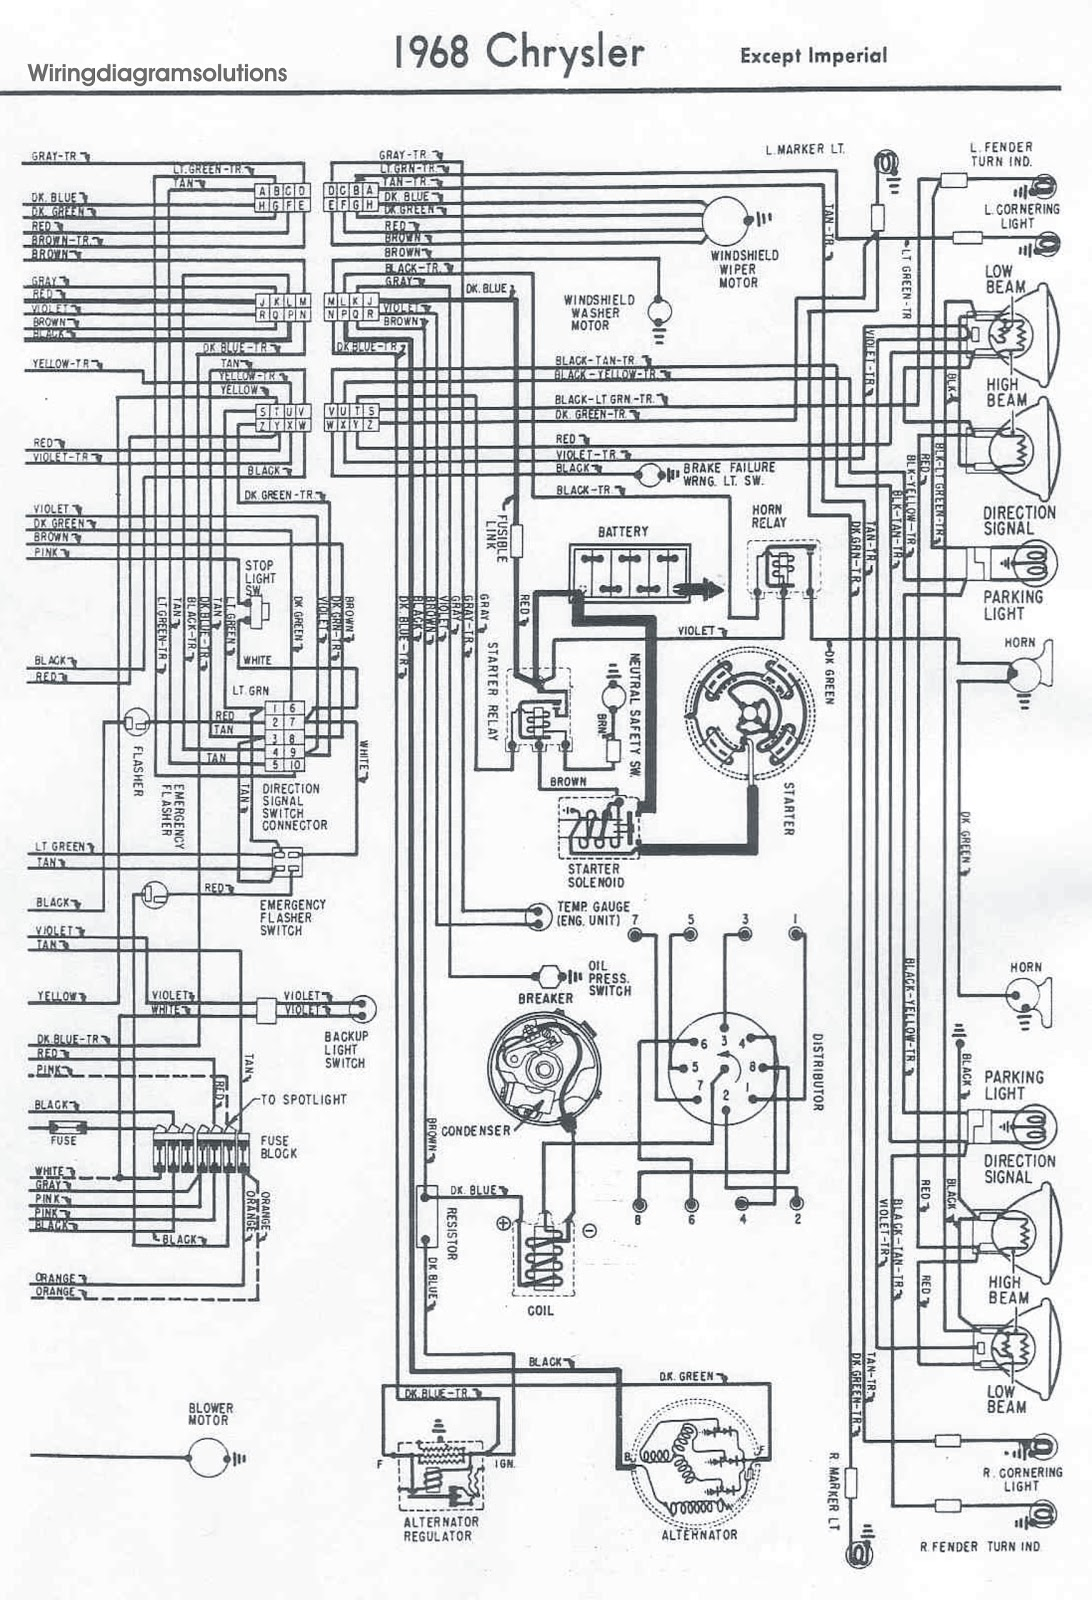 05 chrysler pacifica immobilizer wiring diagram - wiring diagram filter  trace-suggest - trace-suggest.cosmoristrutturazioni.it  cos.mo. s.r.l.